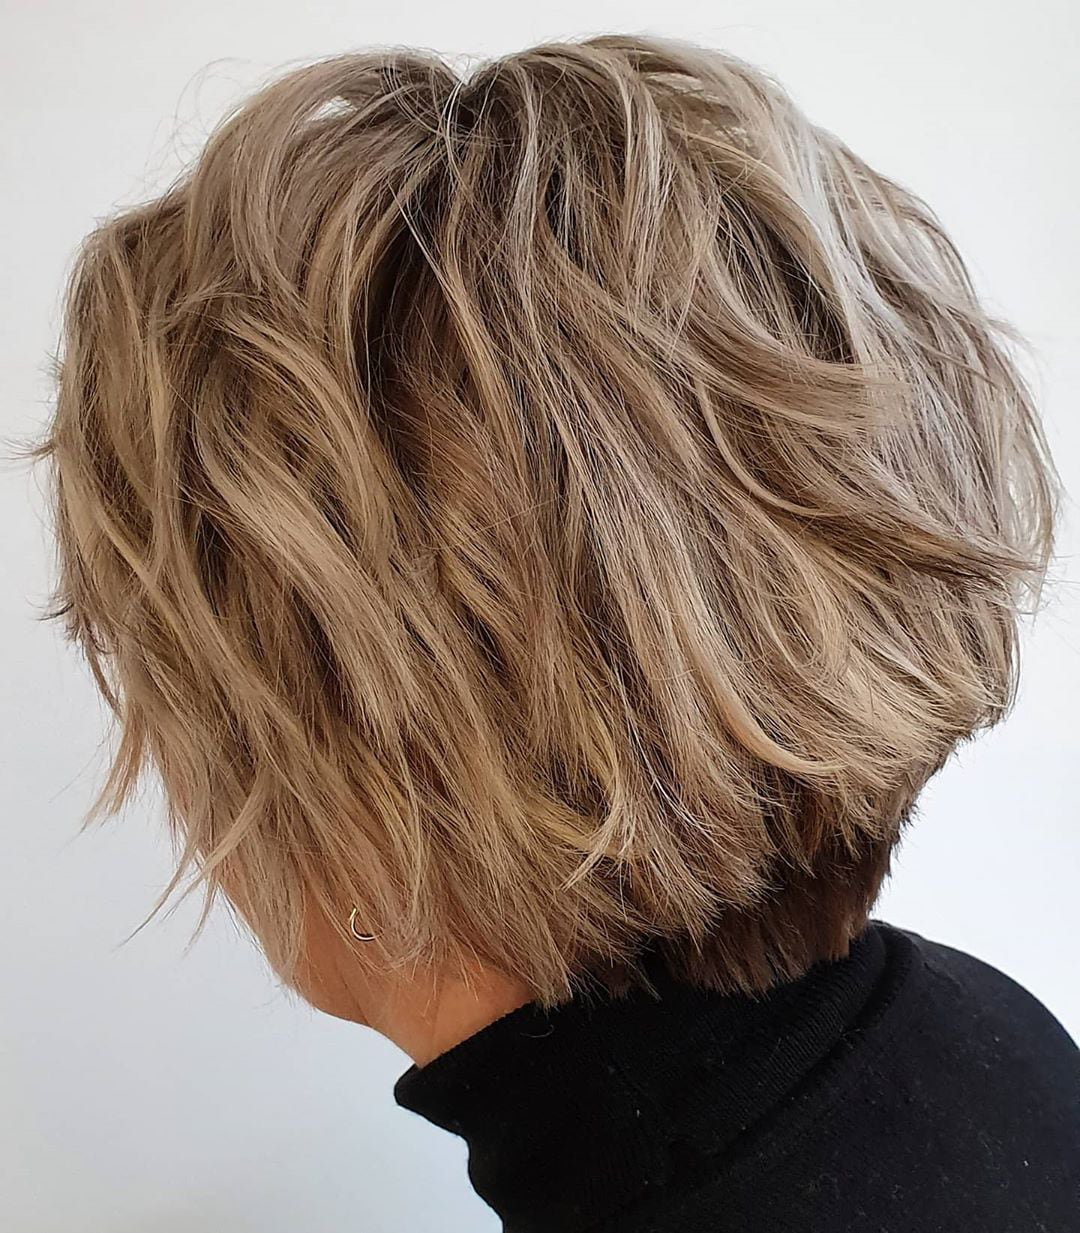 what short hairs are in 2020 shorts hairstyles for older women 56